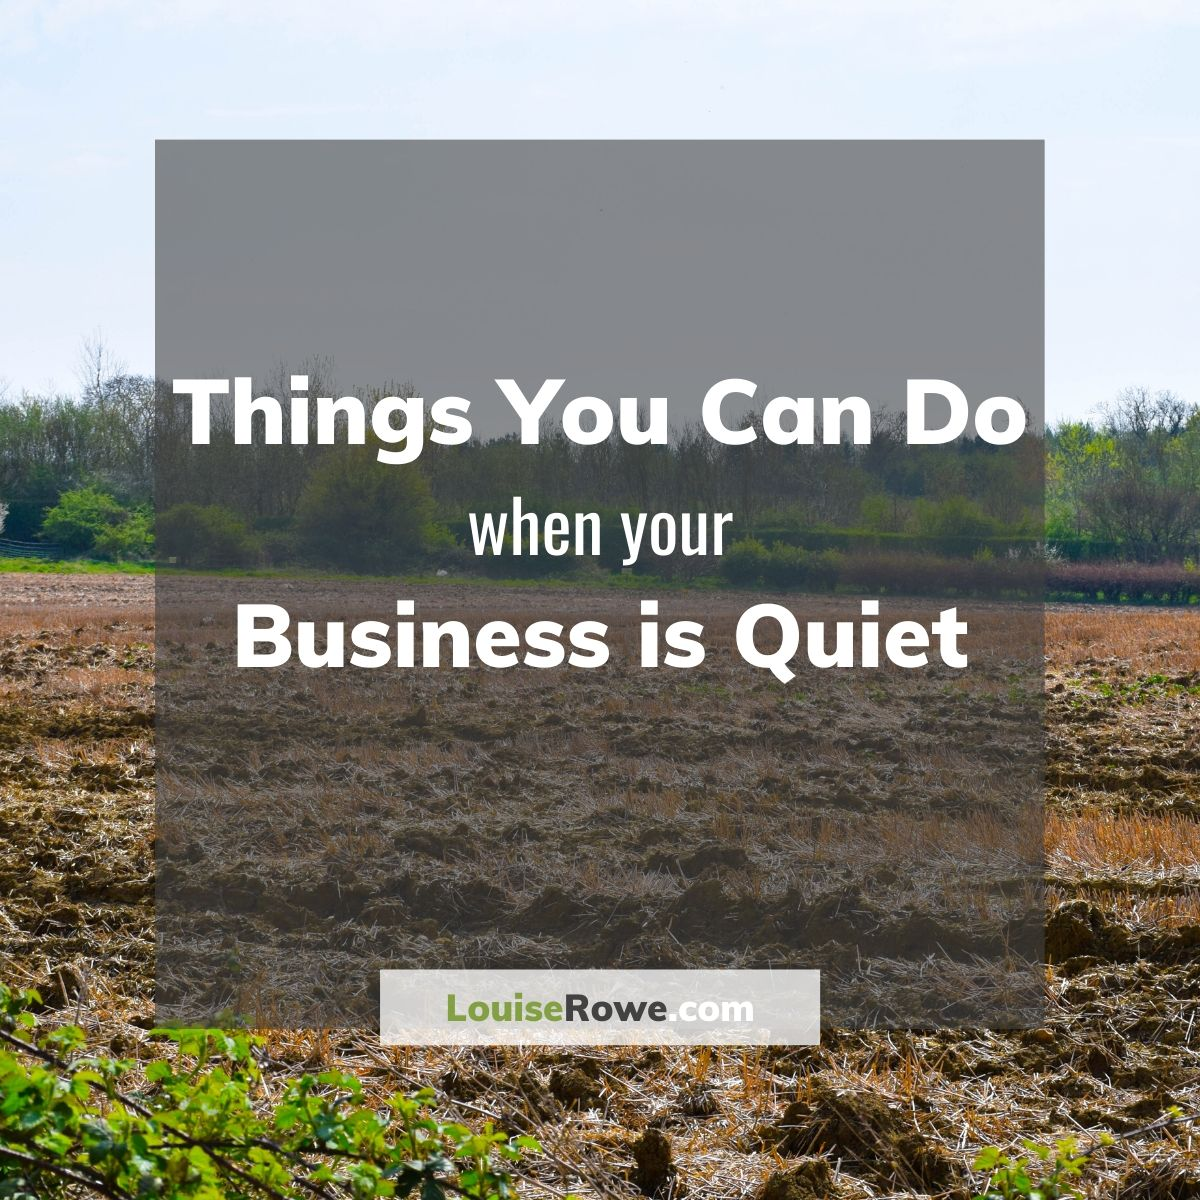 Things you can do when your business is quiet (title). Photo credit © L Rowe 2020